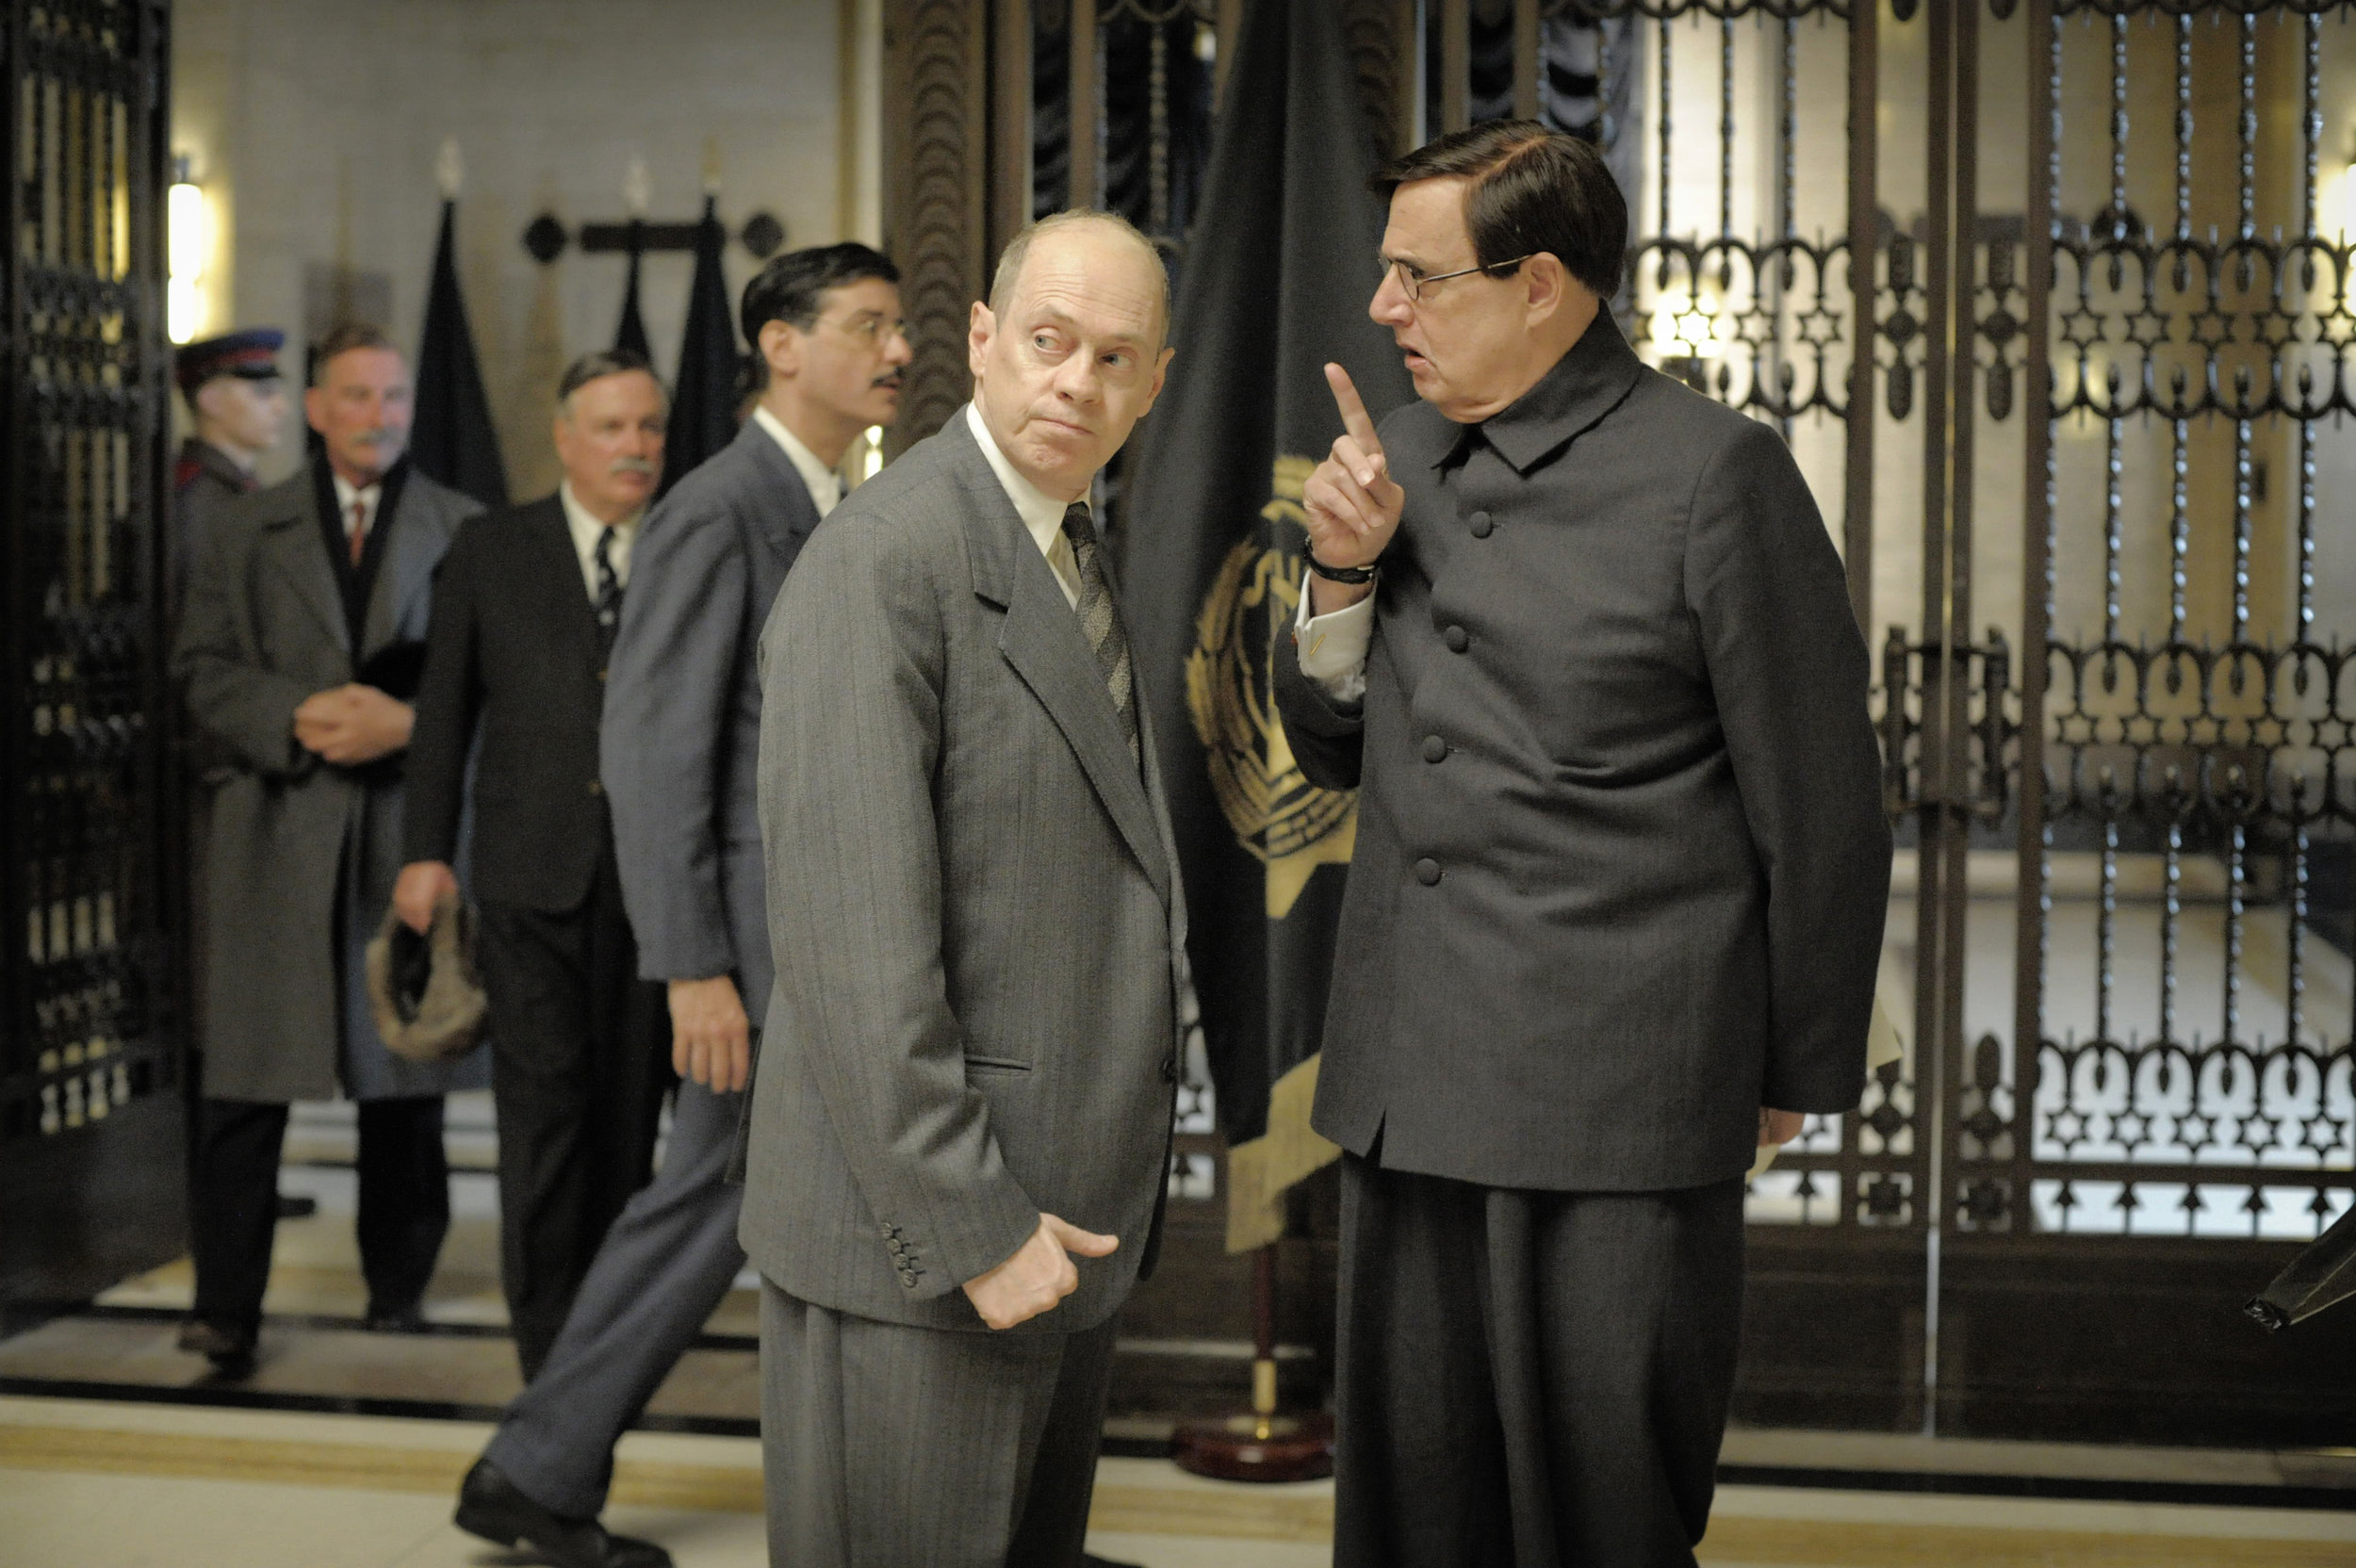 Khrushchev (Steve Buscemi) and Malenkov (Jeffrey Tambor) conspire in The Death of Stalin